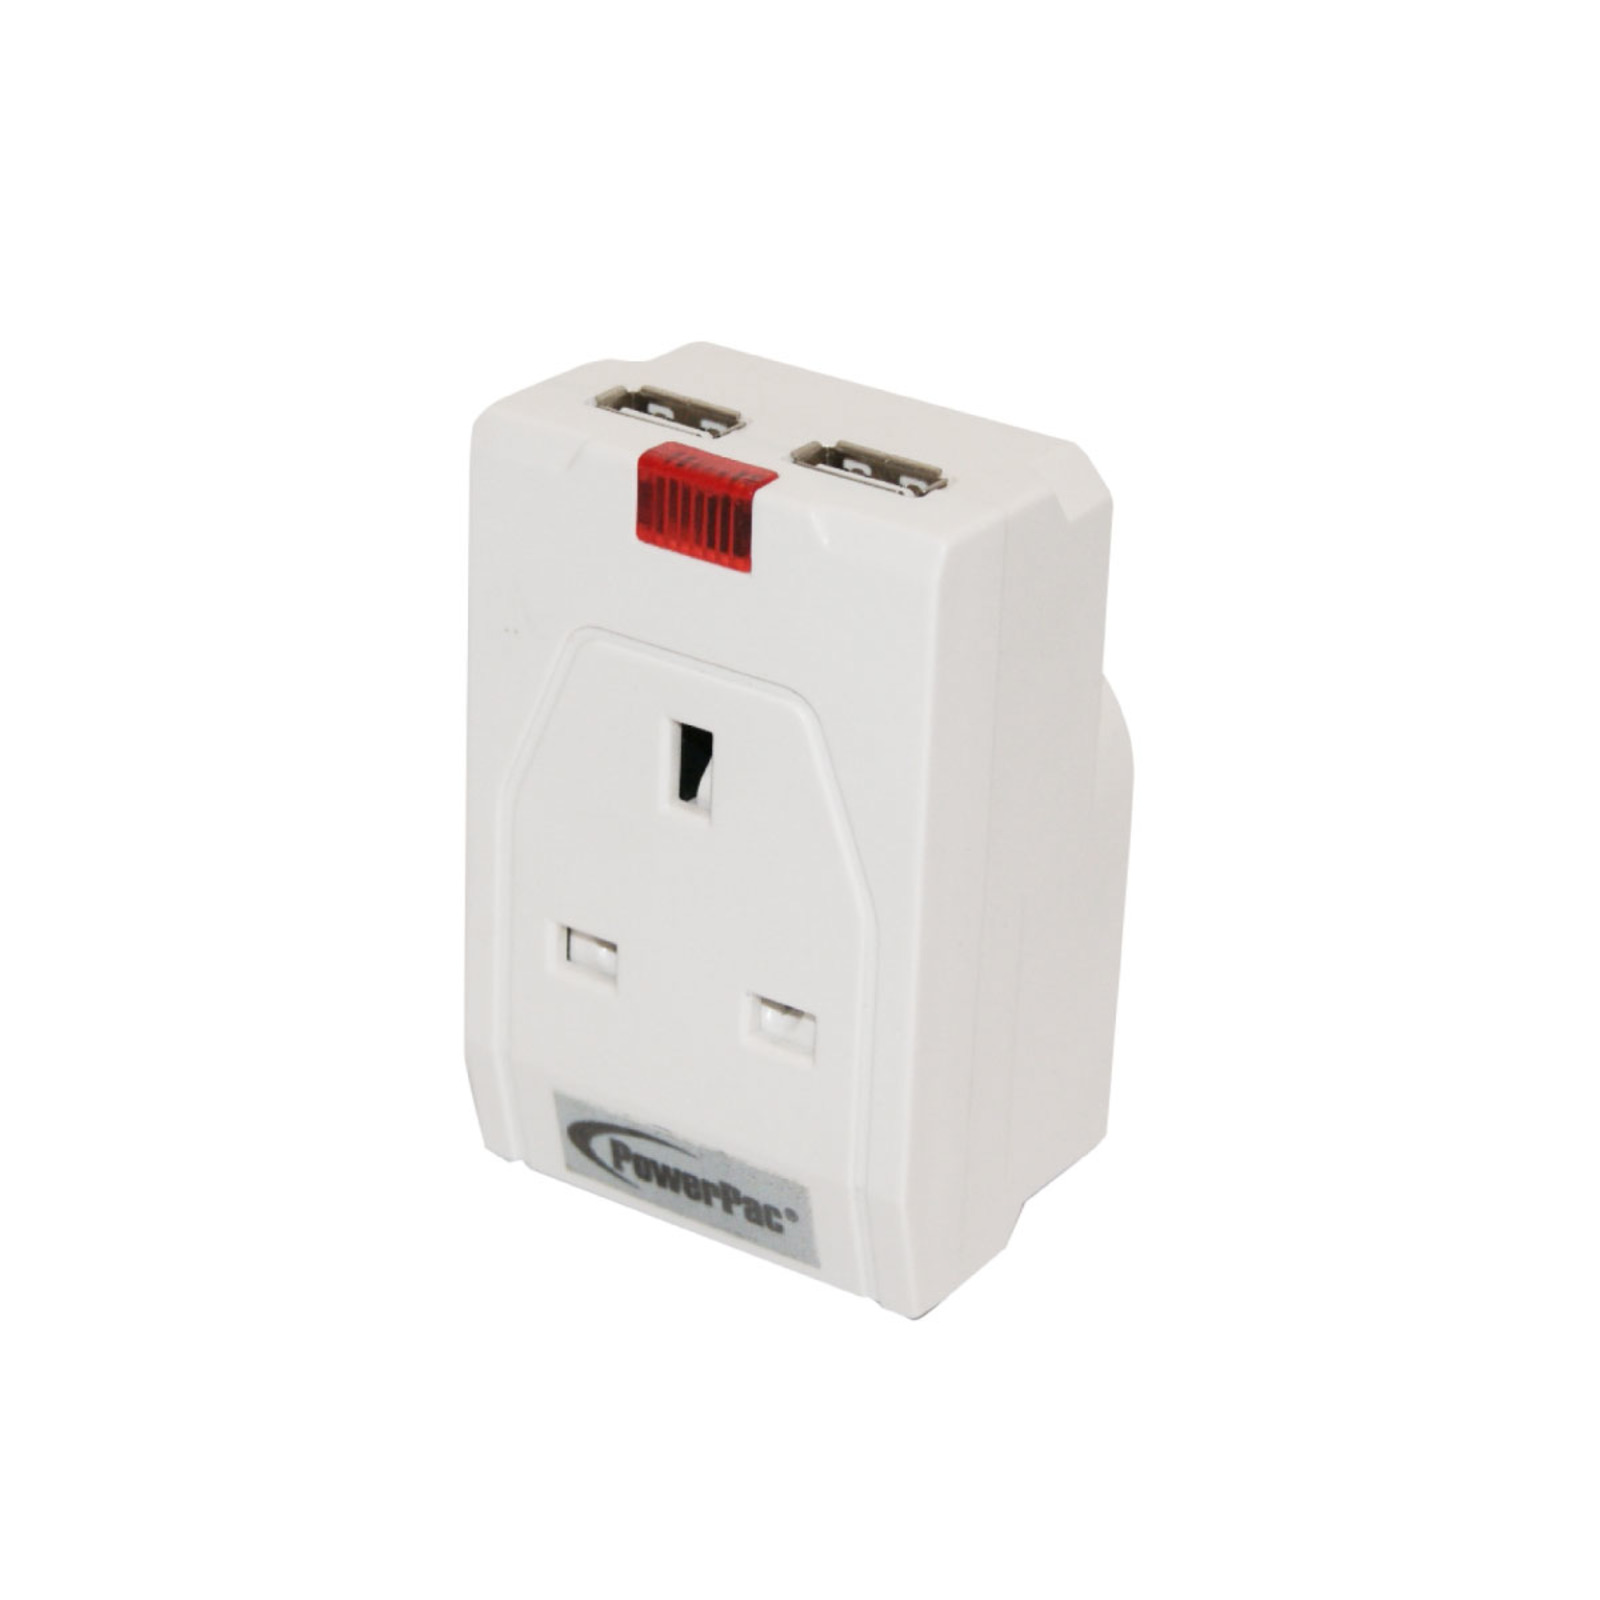 PowerPac Multi Adapter With 2X USB Adapter 2.1A - PP010U